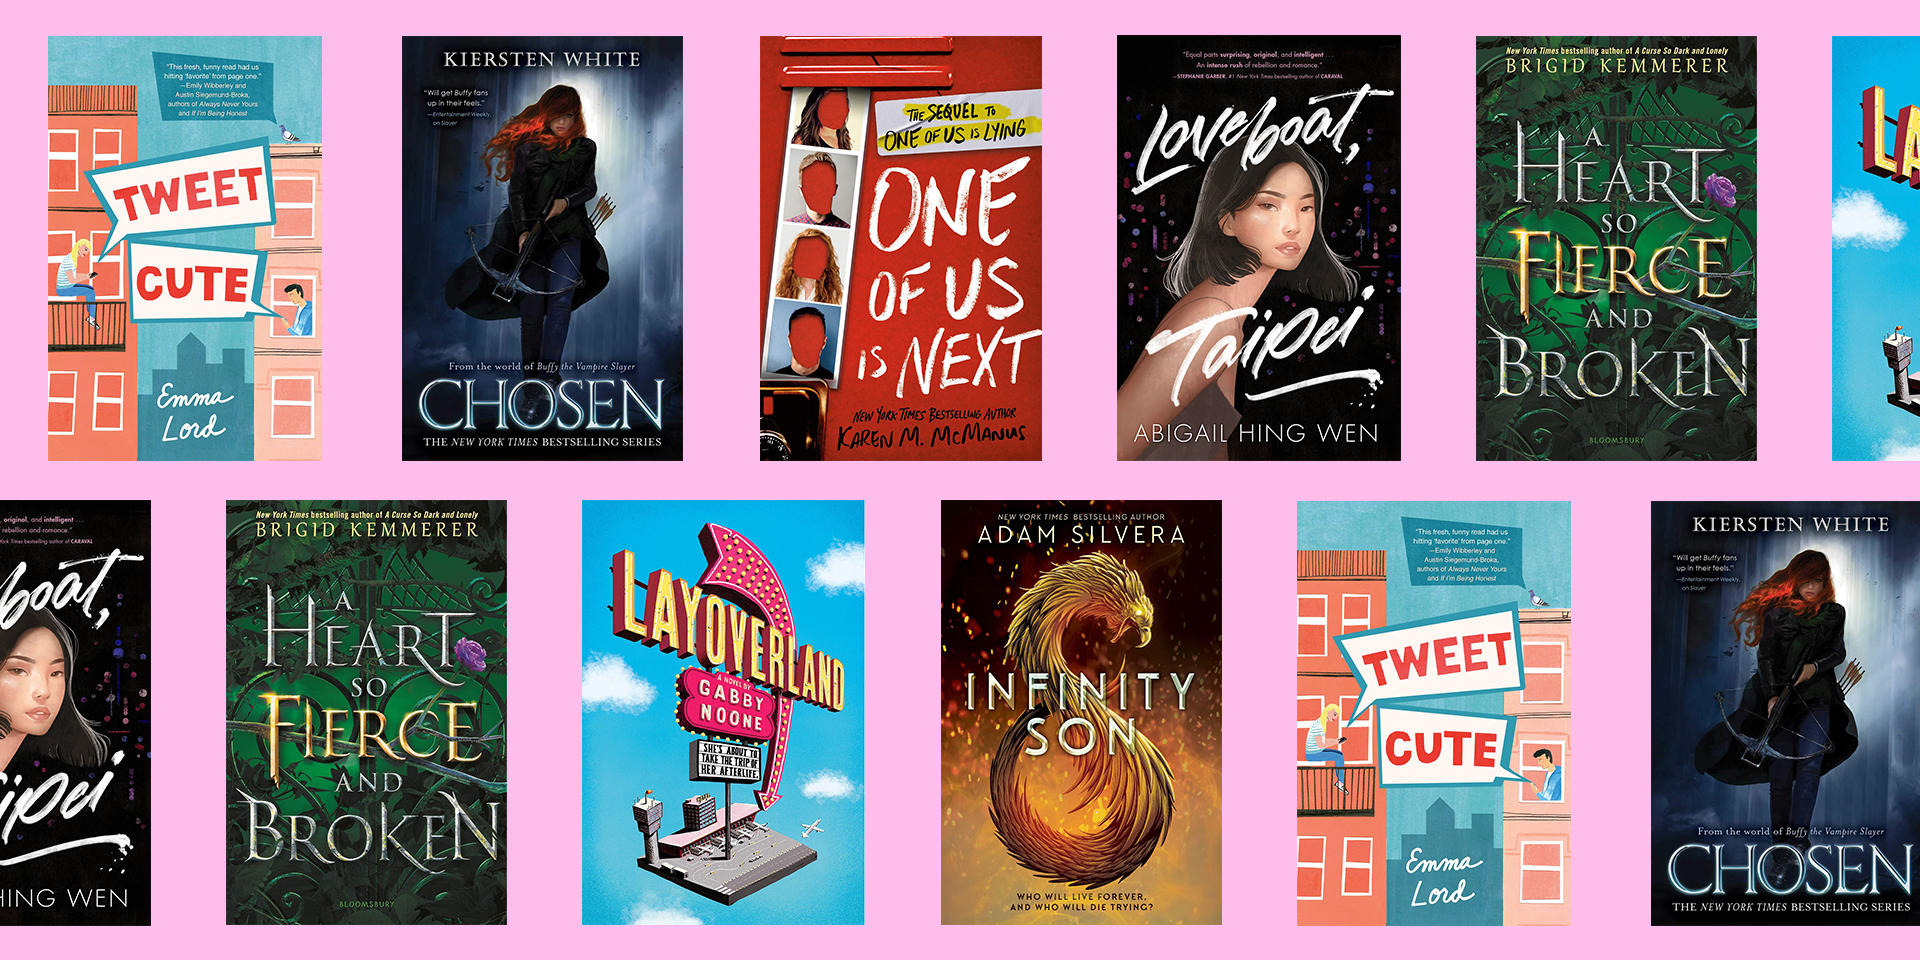 Top Ya Books 2020 To Give For Christmas Best Young Adult Books of 2020 So Far   Must Read YA Novels of the